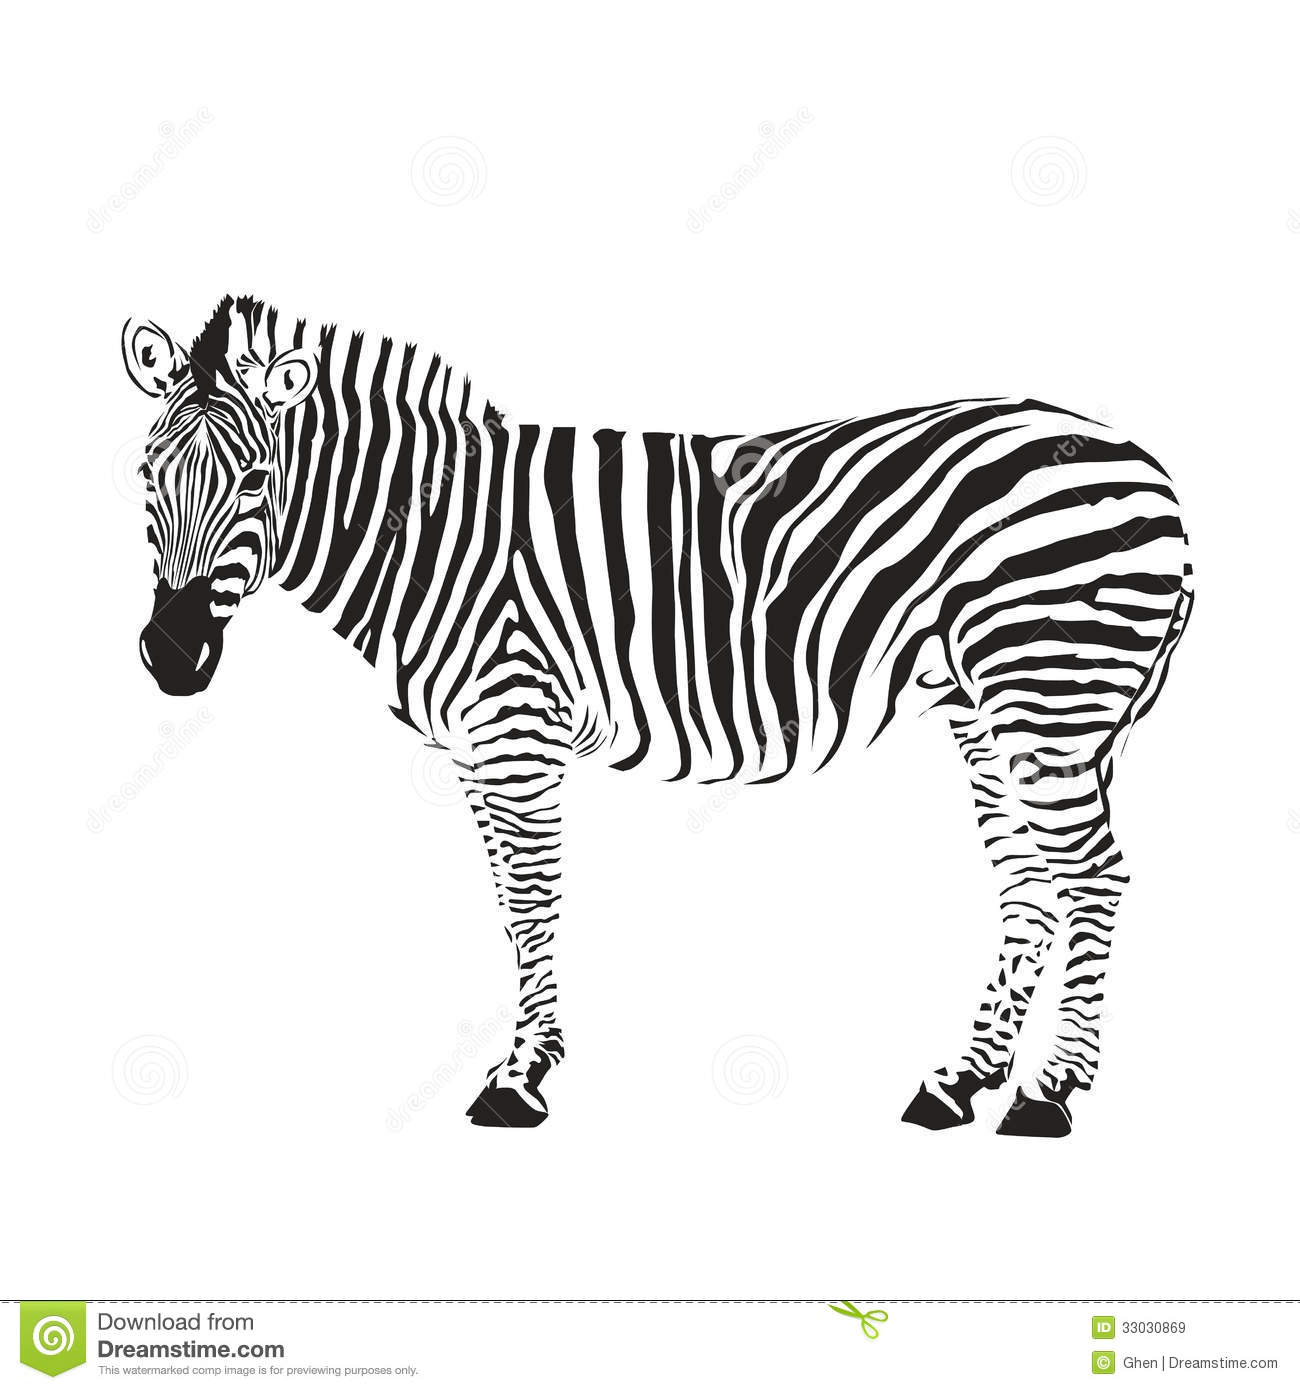 Zebra Silhouette Royalty Free Stock Images